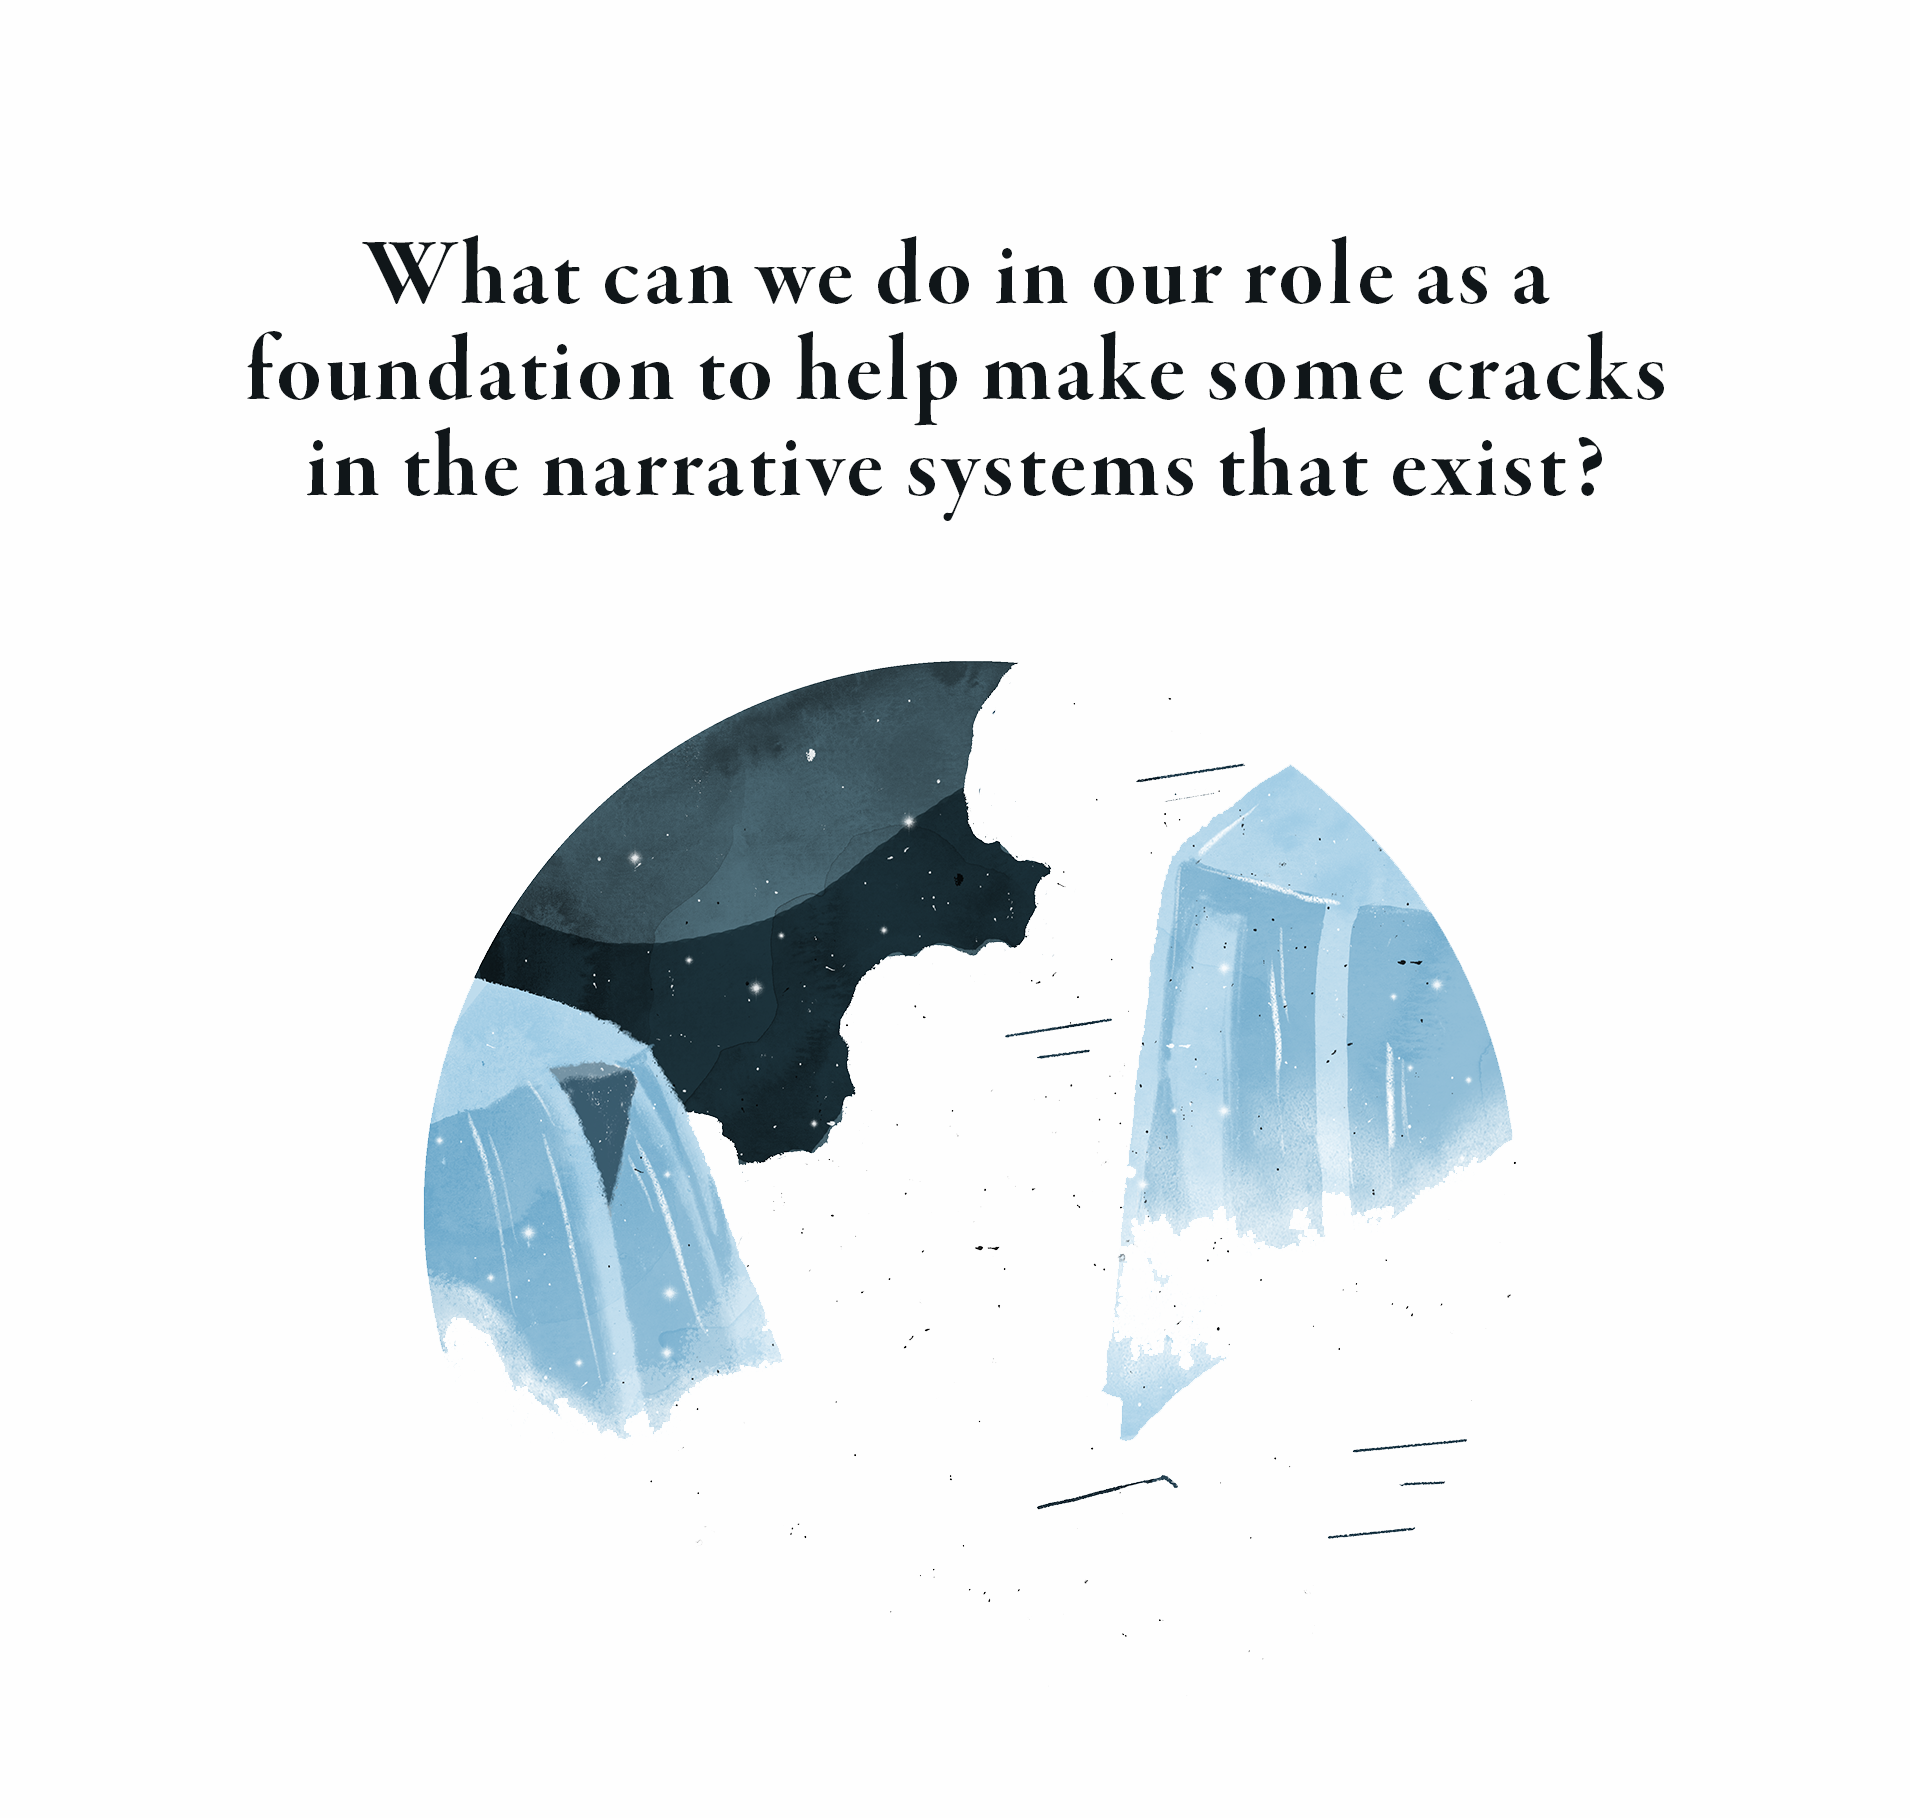 What can we do in our role as a foundation to help make some cracks in the narrative systems that exist?